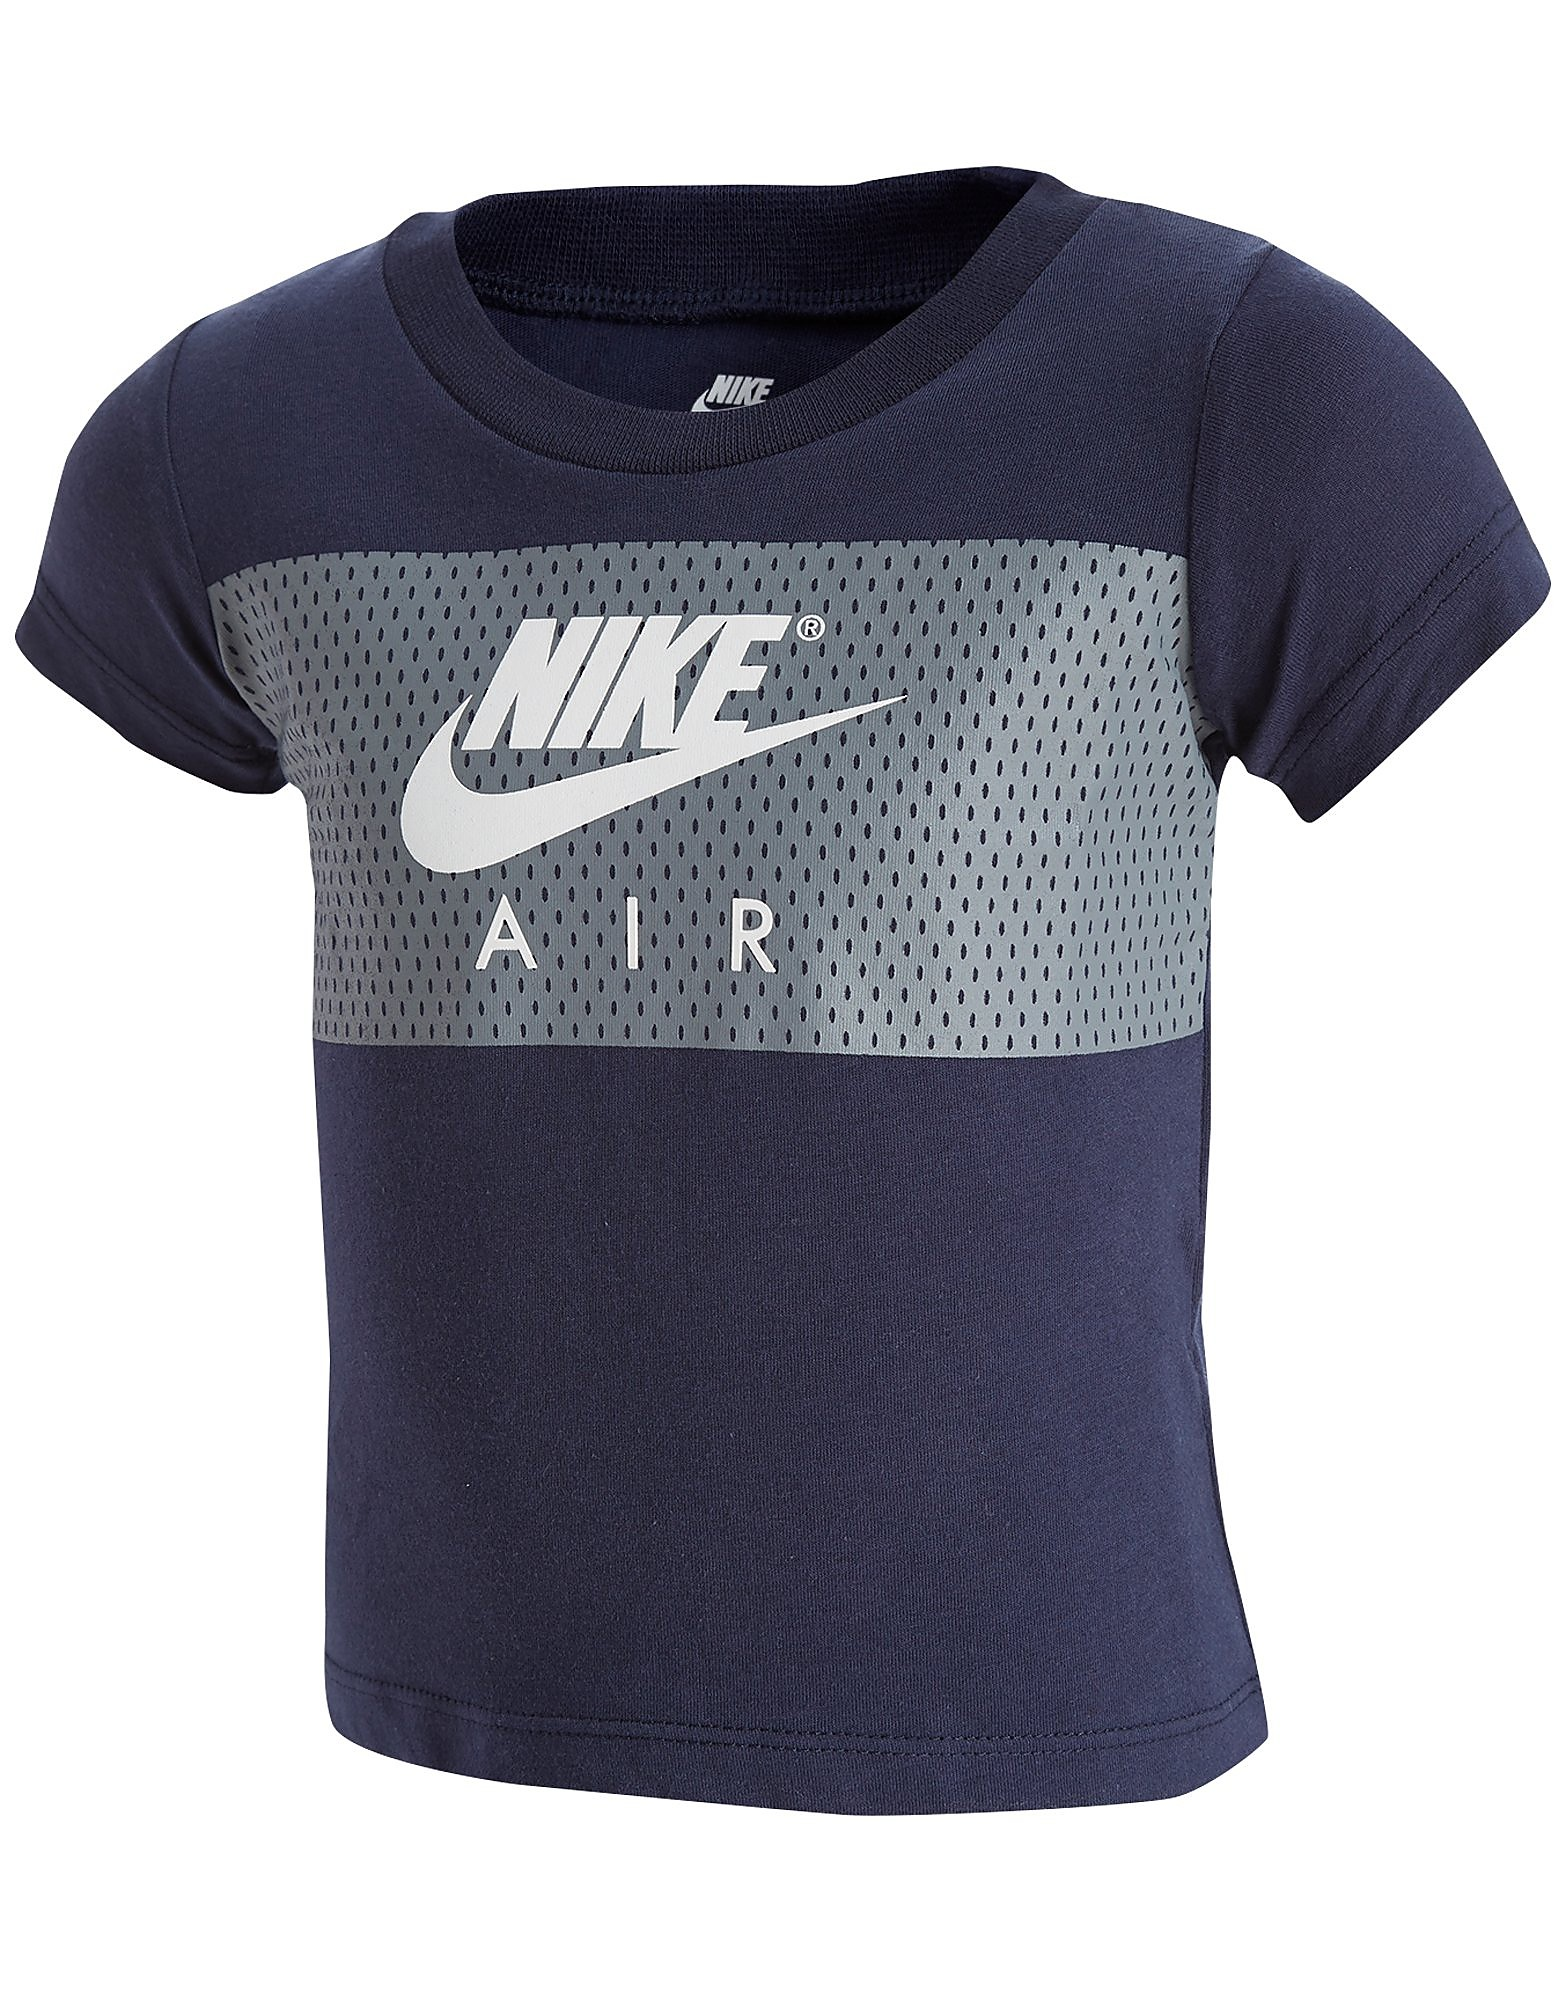 Nike Air Colour Block T-Shirt Baby's